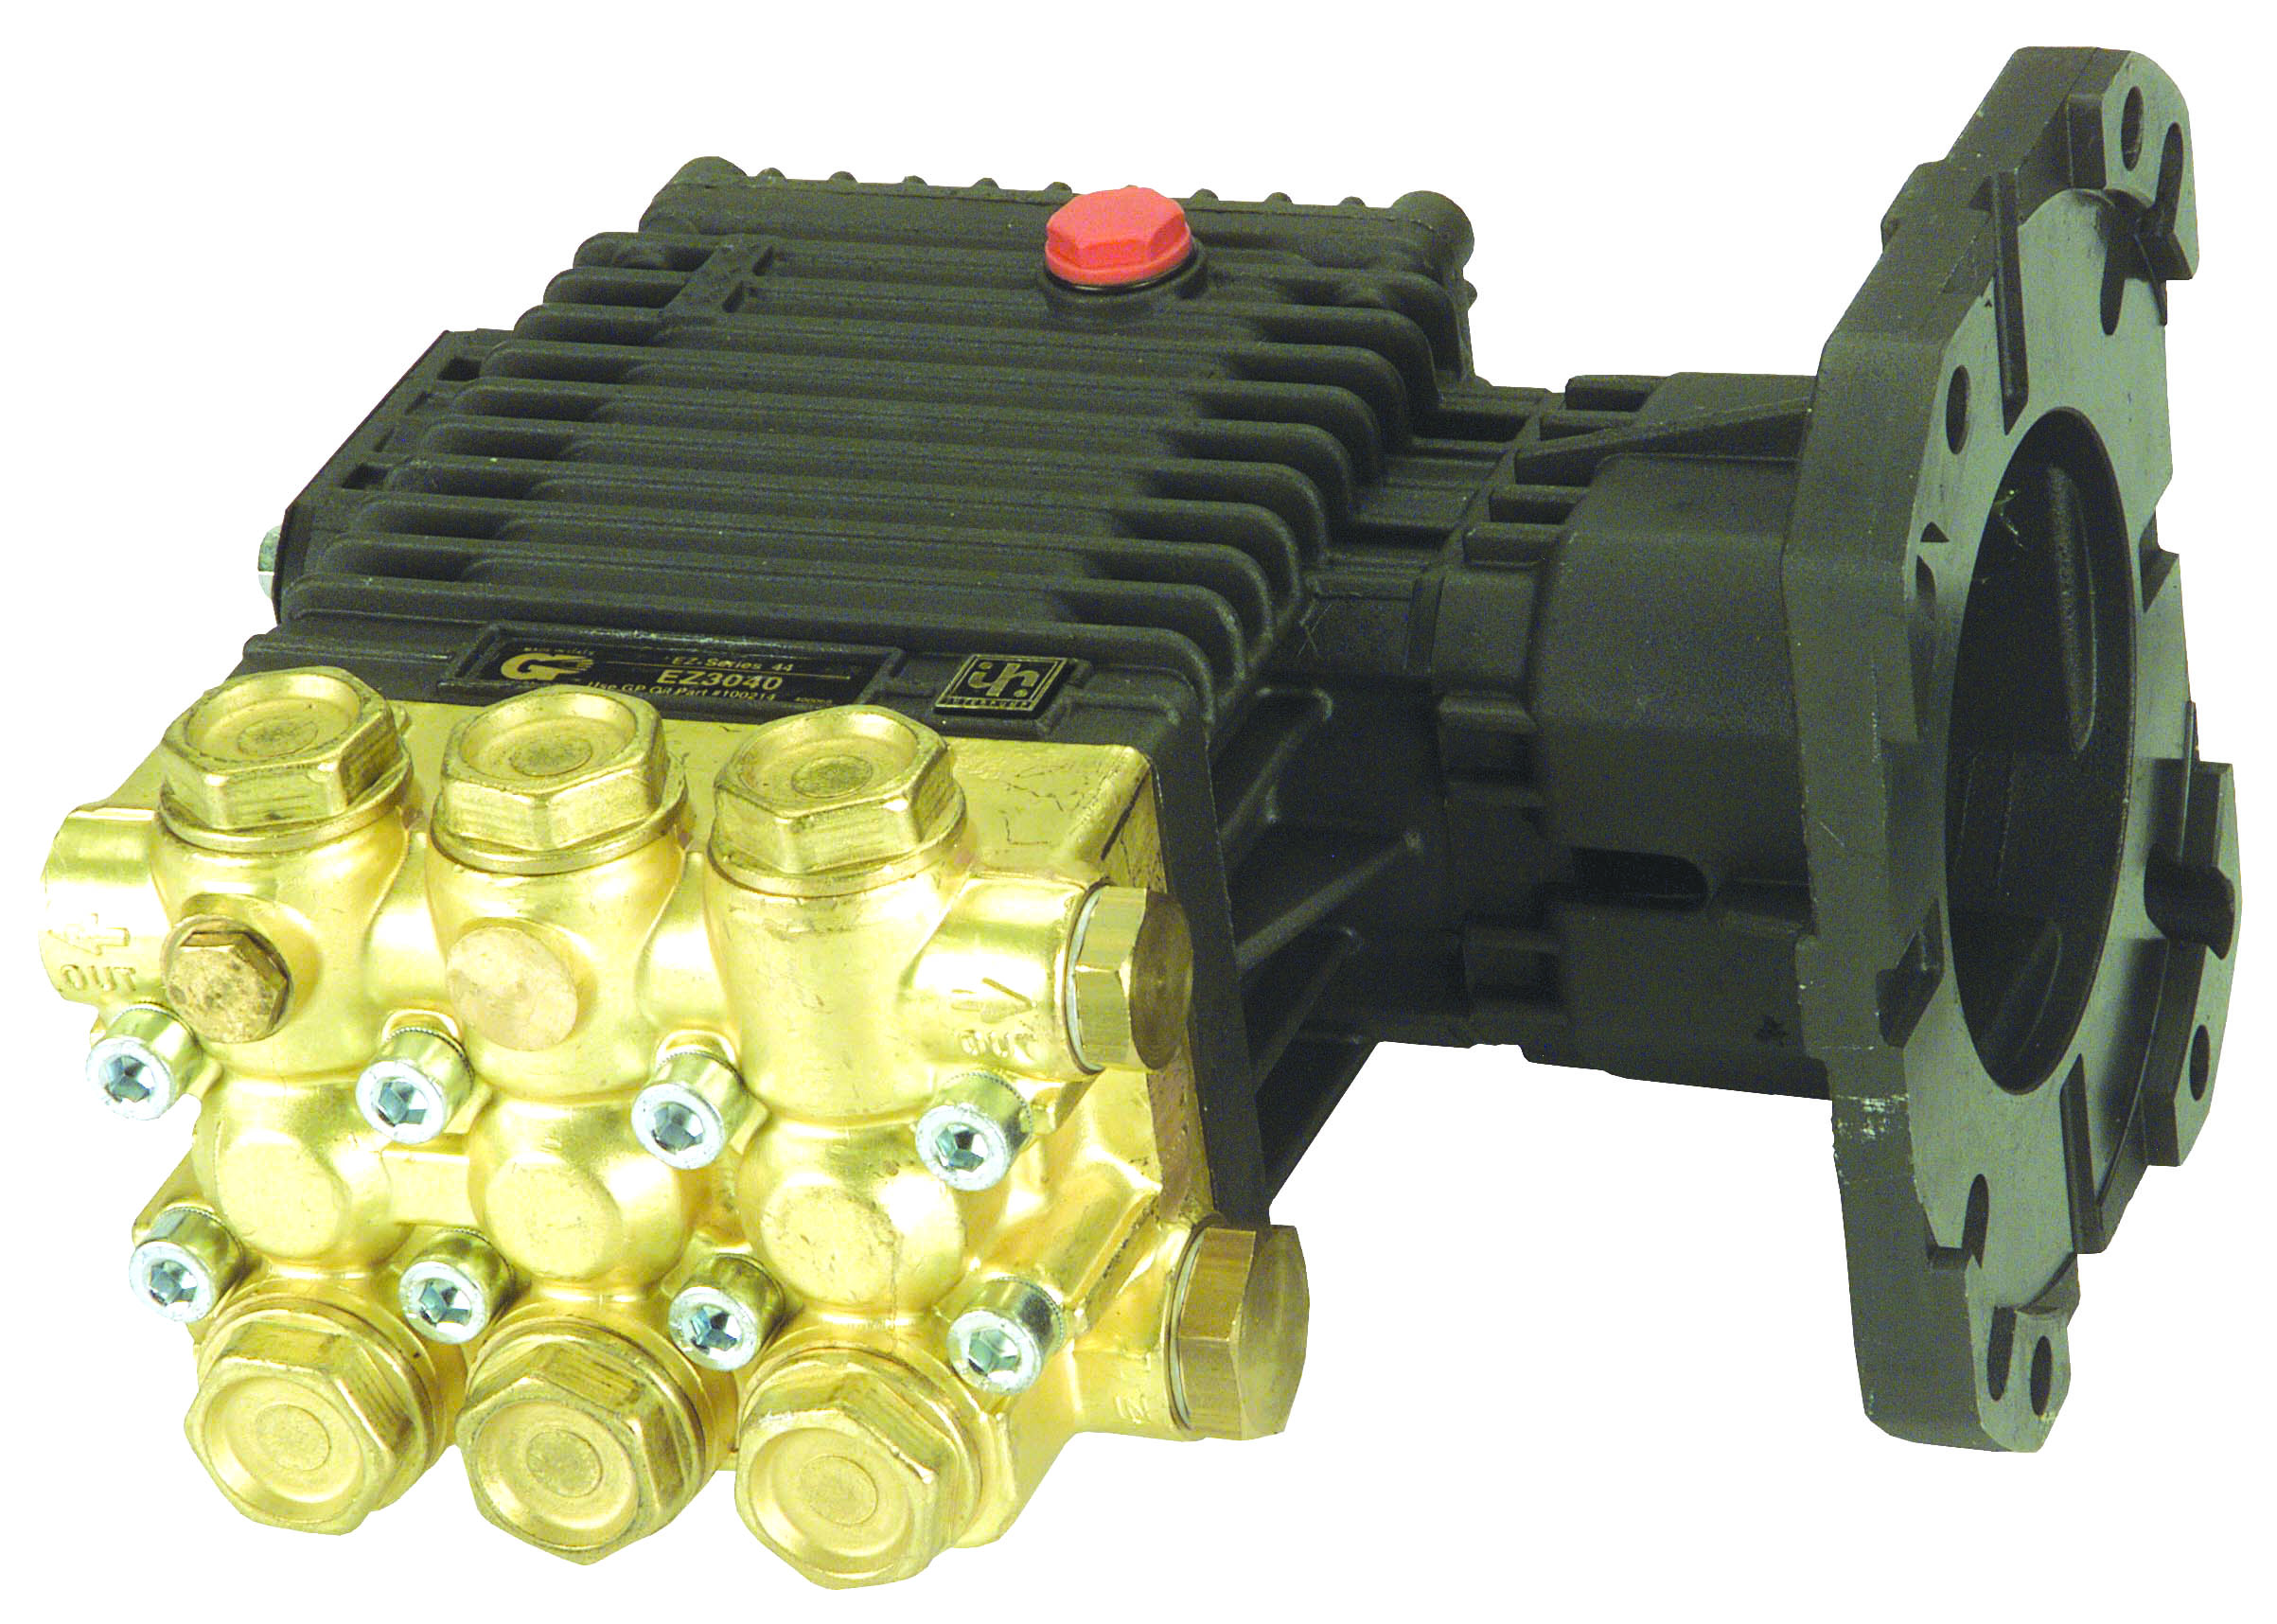 Water pump - #EZ4035G34